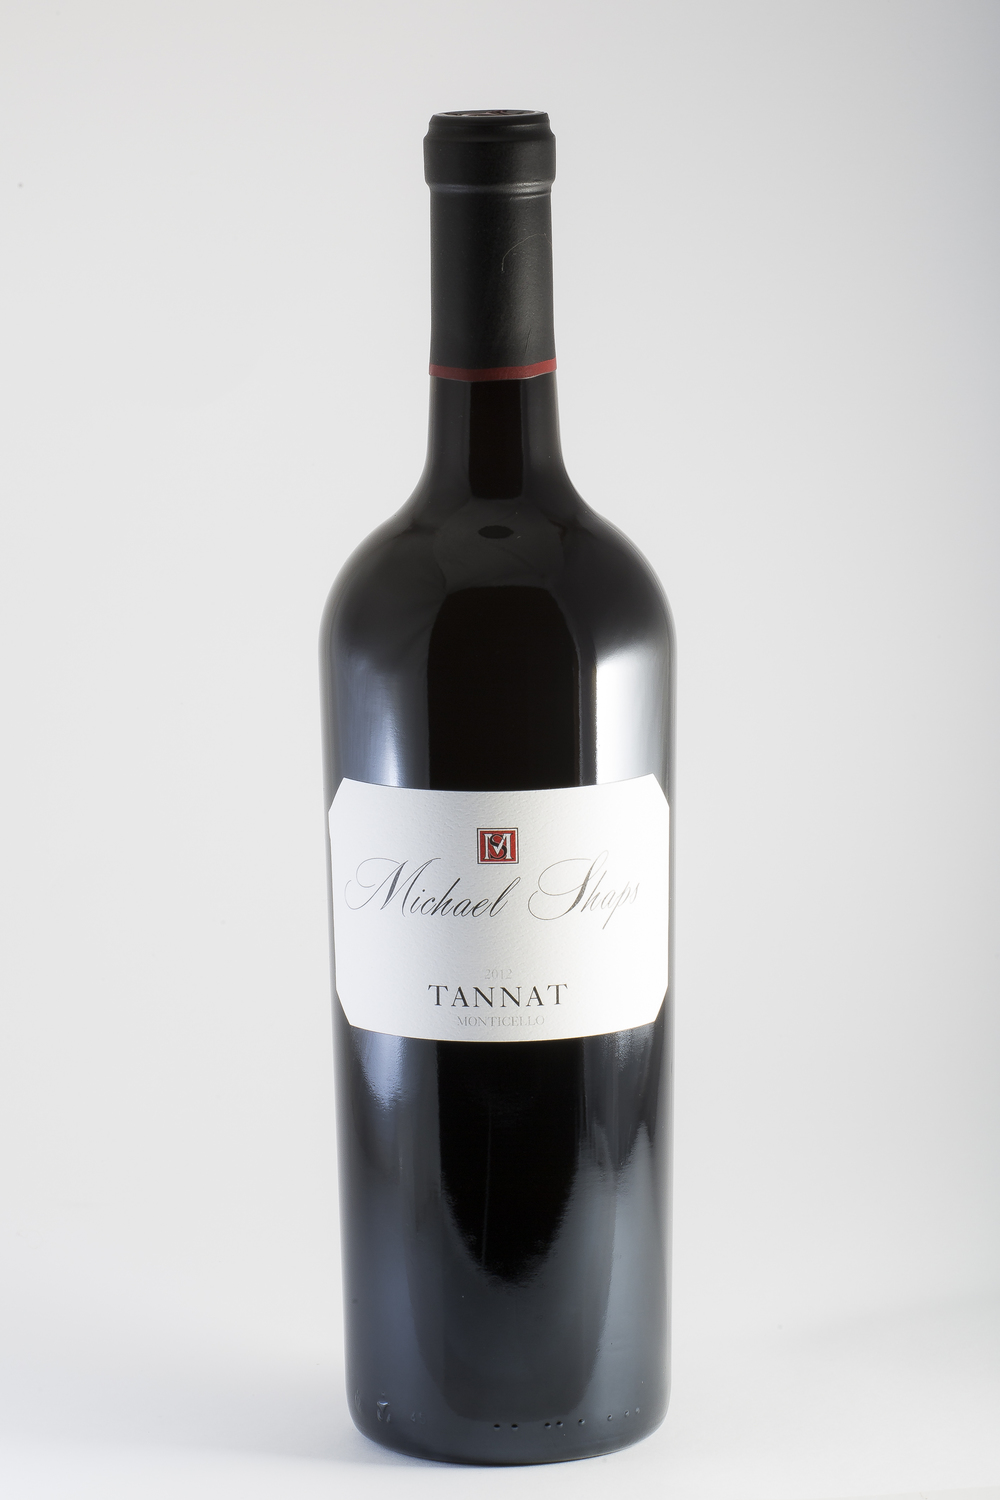 Michael Shaps Tannat 2013  $40 Our 2013 Tannat won a Gold medal at the 2016 Governor's Cup wine competition. This grape varietal is up and coming in Virginia as it is well-suited to this climate and soil.  Tannat is the traditional grape of the Madiran region of France, where it is known to have heavy tannins and dark color.